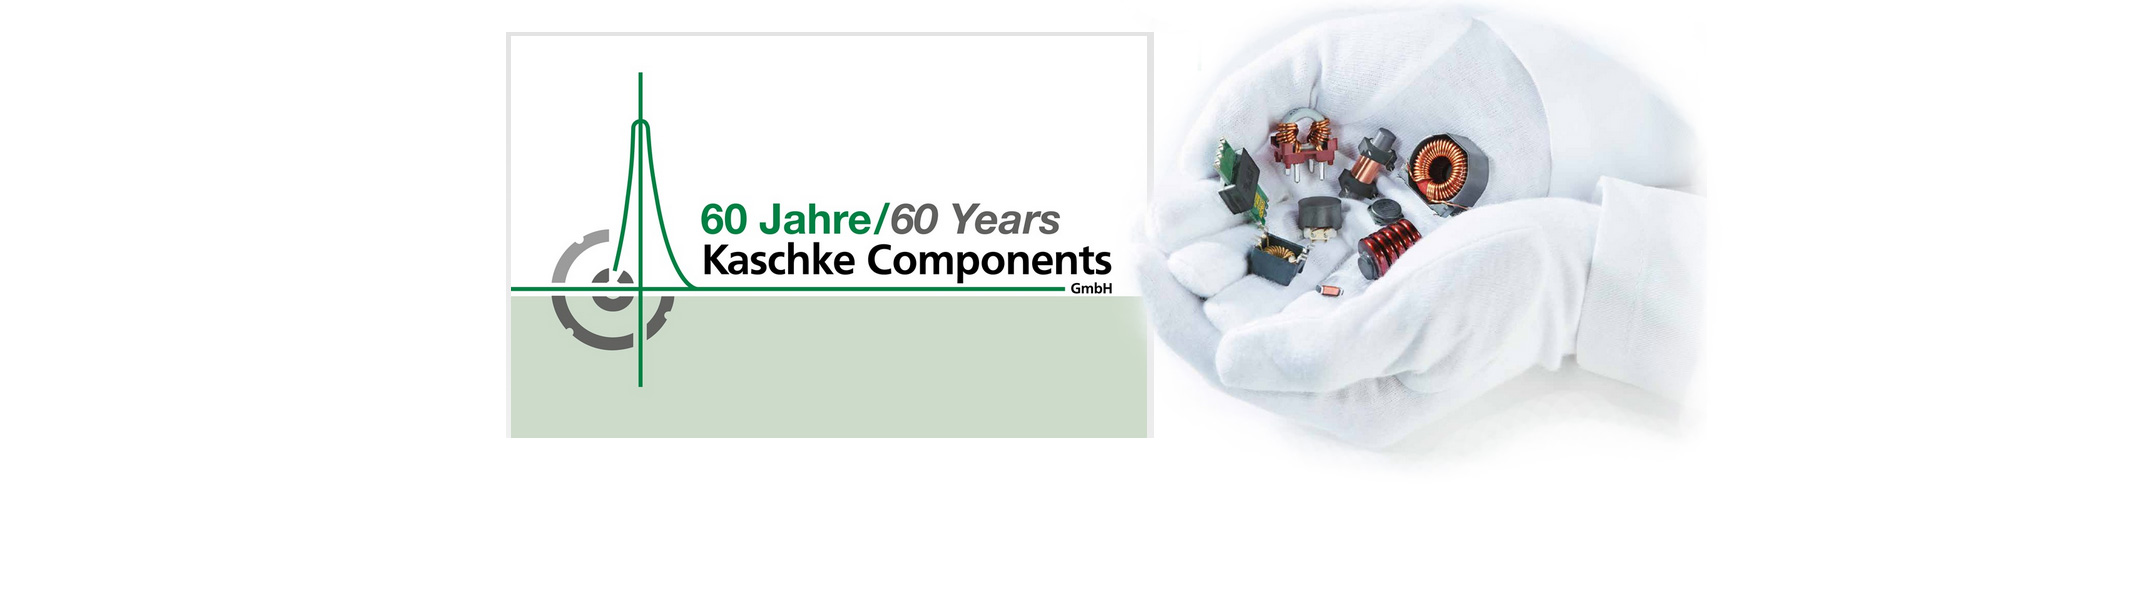 60 Years of Kaschke Components link to Kaschke brochure